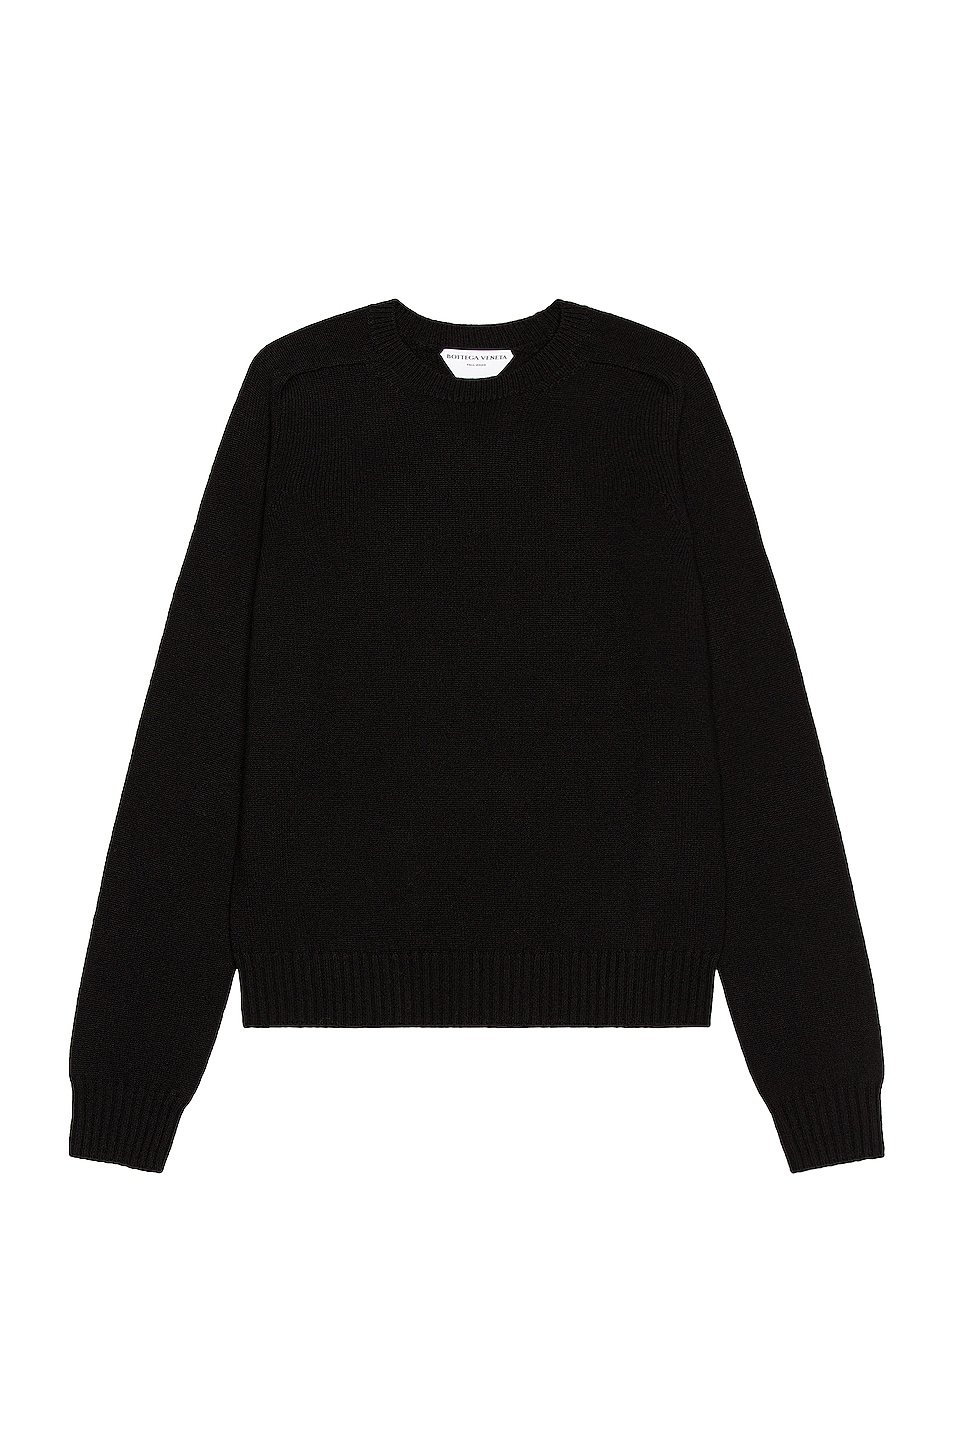 Image 1 of Bottega Veneta Crewneck Sweater in Black